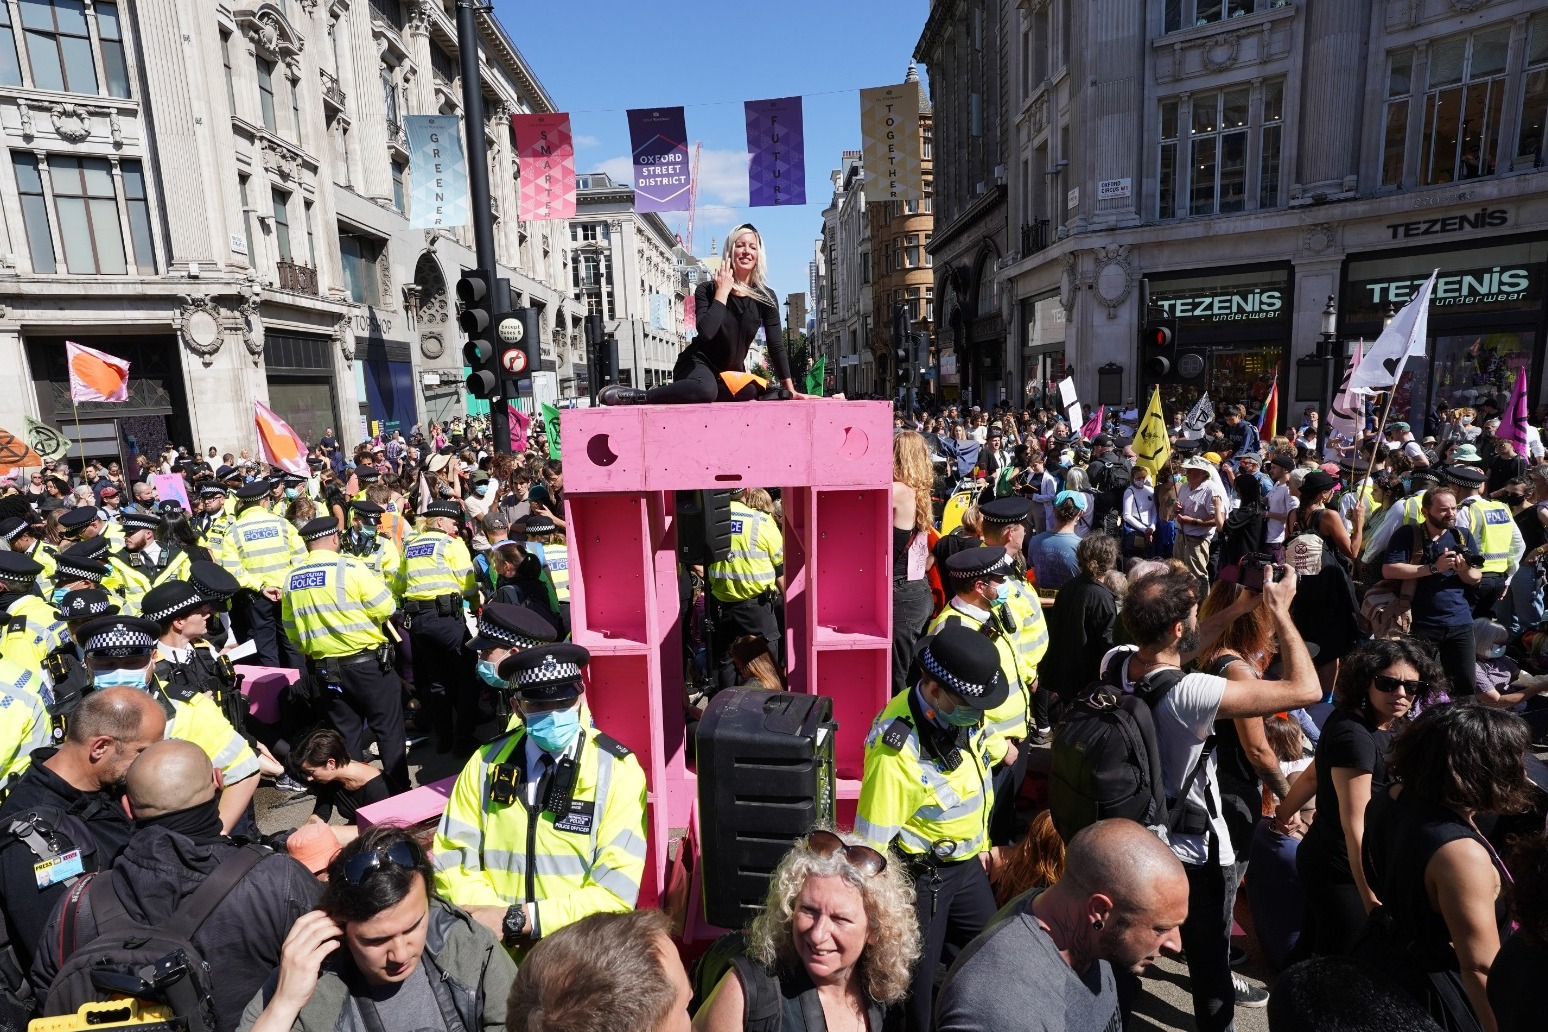 Activists claim Extinction Rebellion sees surge in support after IPCC report